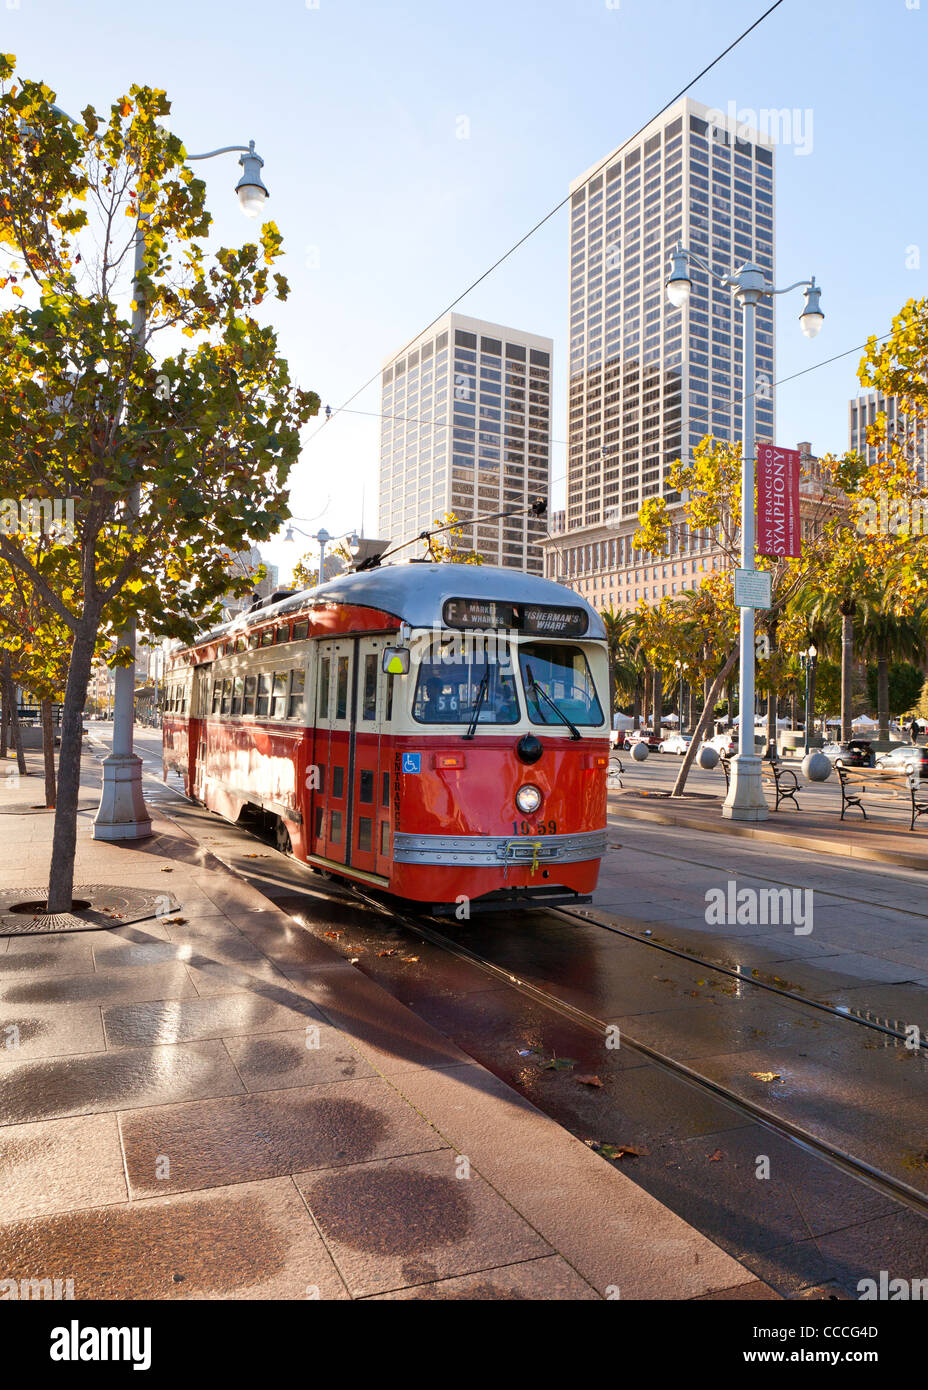 Vintage trolley bus still in use by San Francisco Municipal Transportation Agency - Stock Image